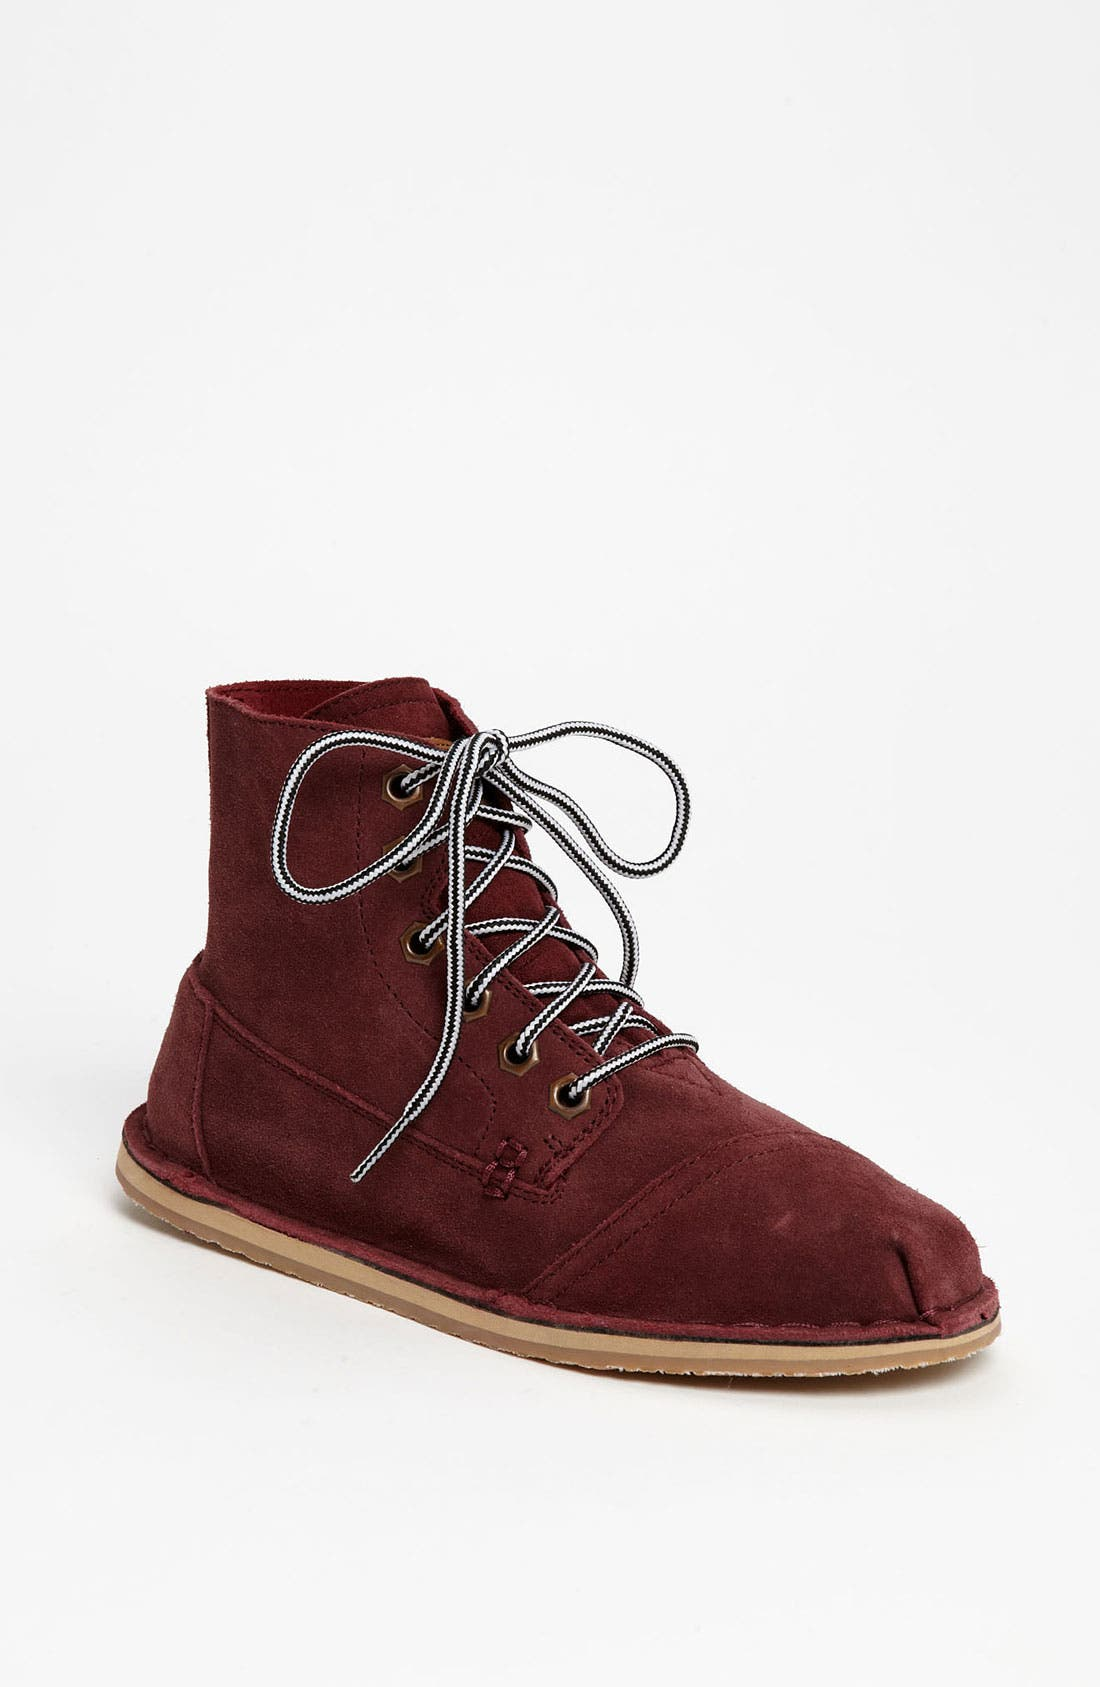 Alternate Image 1 Selected - TOMS 'Tomboy' Boot (Women)